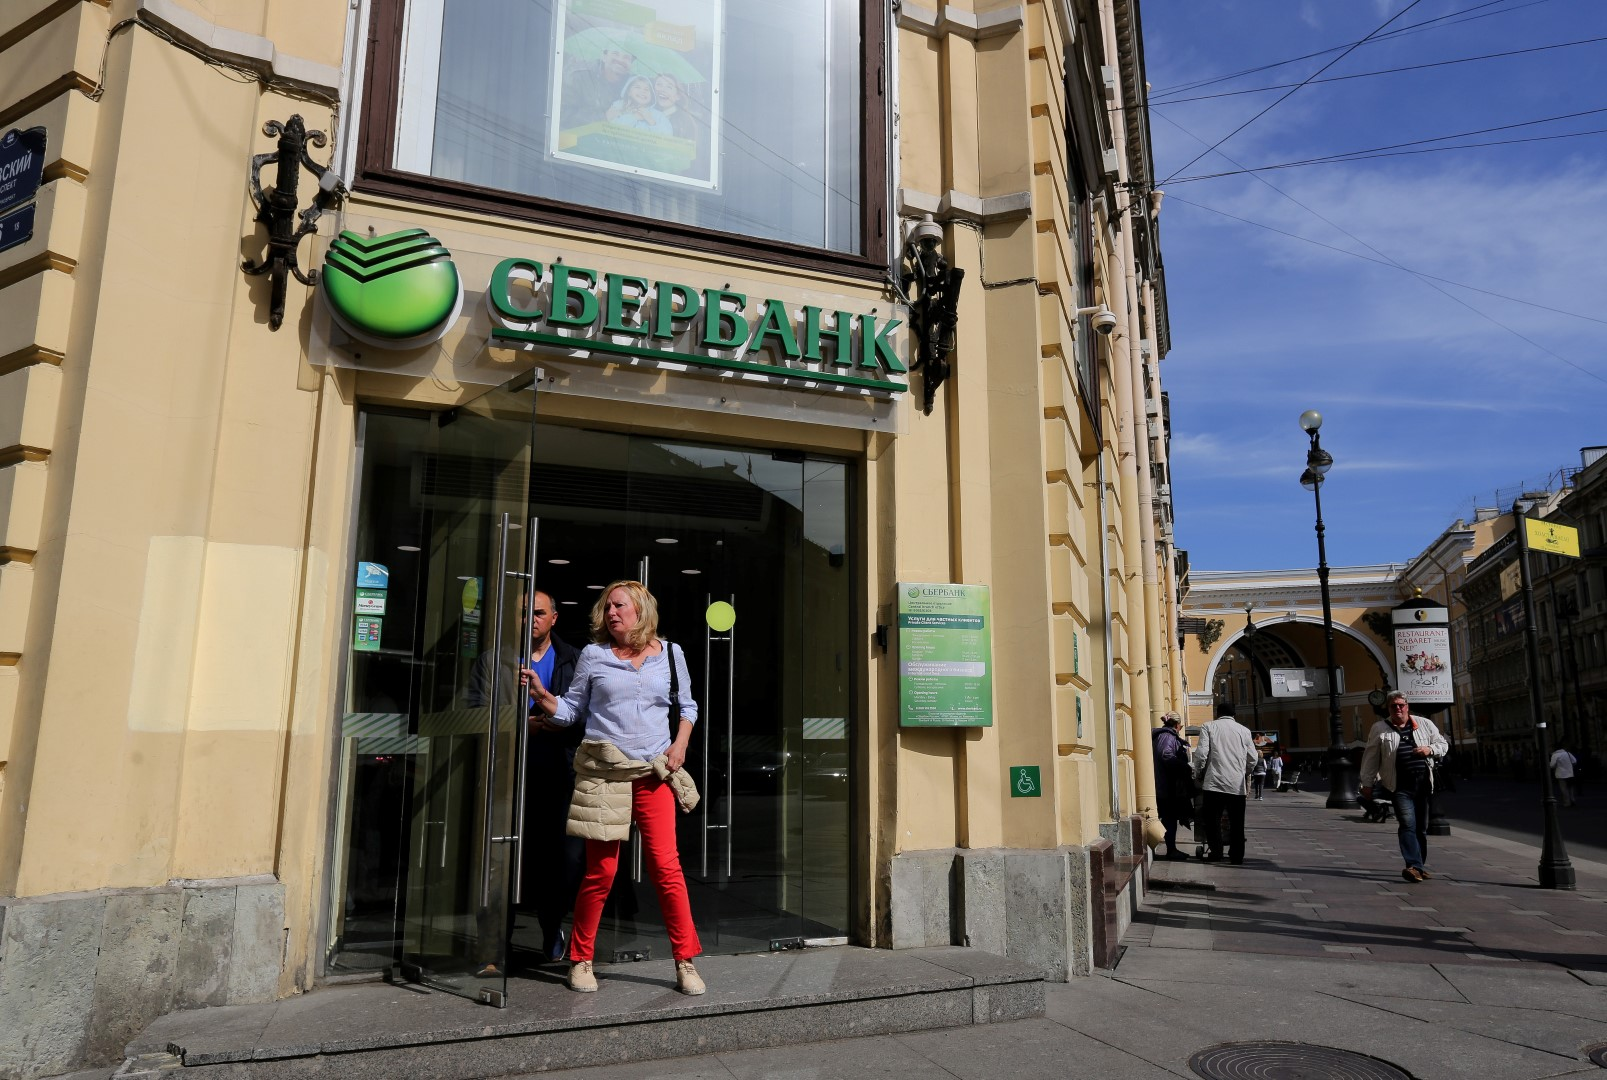 Customers exit a Sberbank PJSC bank branch ahead of the St. Petersburg International Economic Forum 2016 (SPIEF) in central Saint Petersburg, Russia, on Wednesday, June 15, 2016. The 20th anniversary St. Petersburg International Economic Forum which brings together heads of state and governments, political leaders, leading experts and global company executives runs from June 16-18. Photographer: Andrey Rudakov/Bloomberg